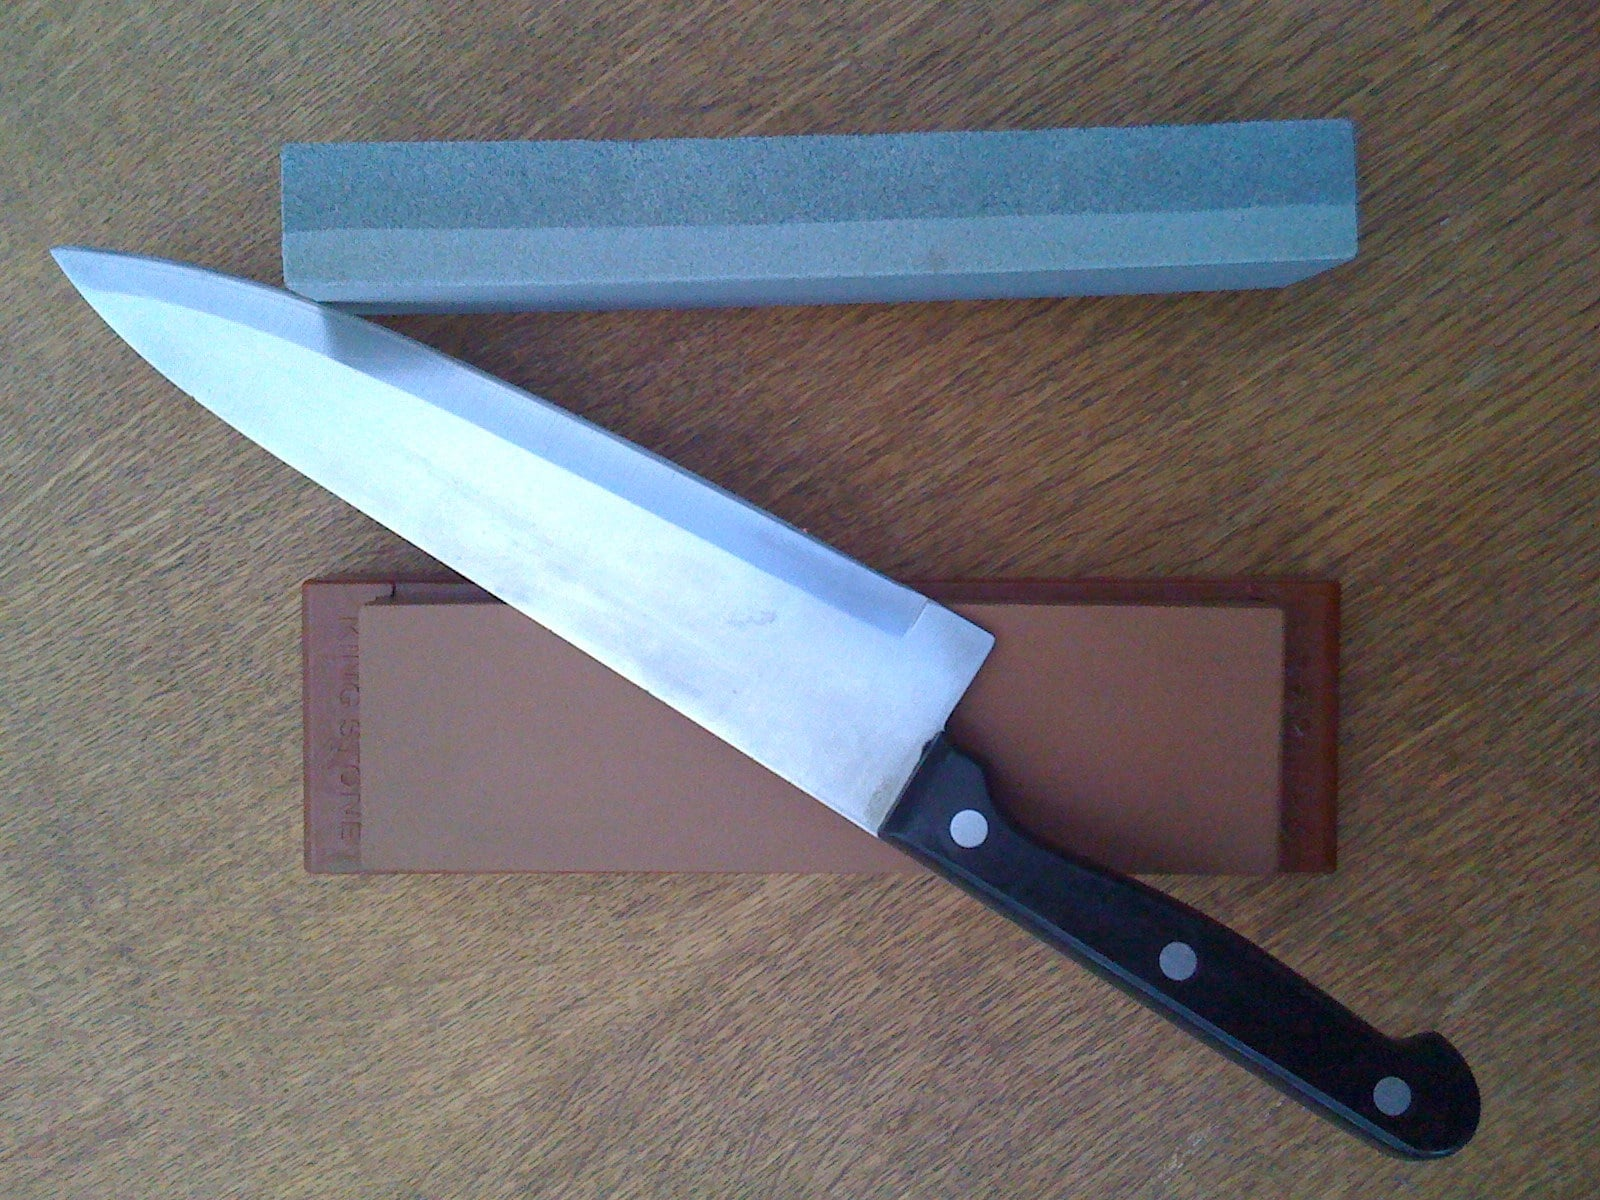 dull blade, how to sharpen a dull blade